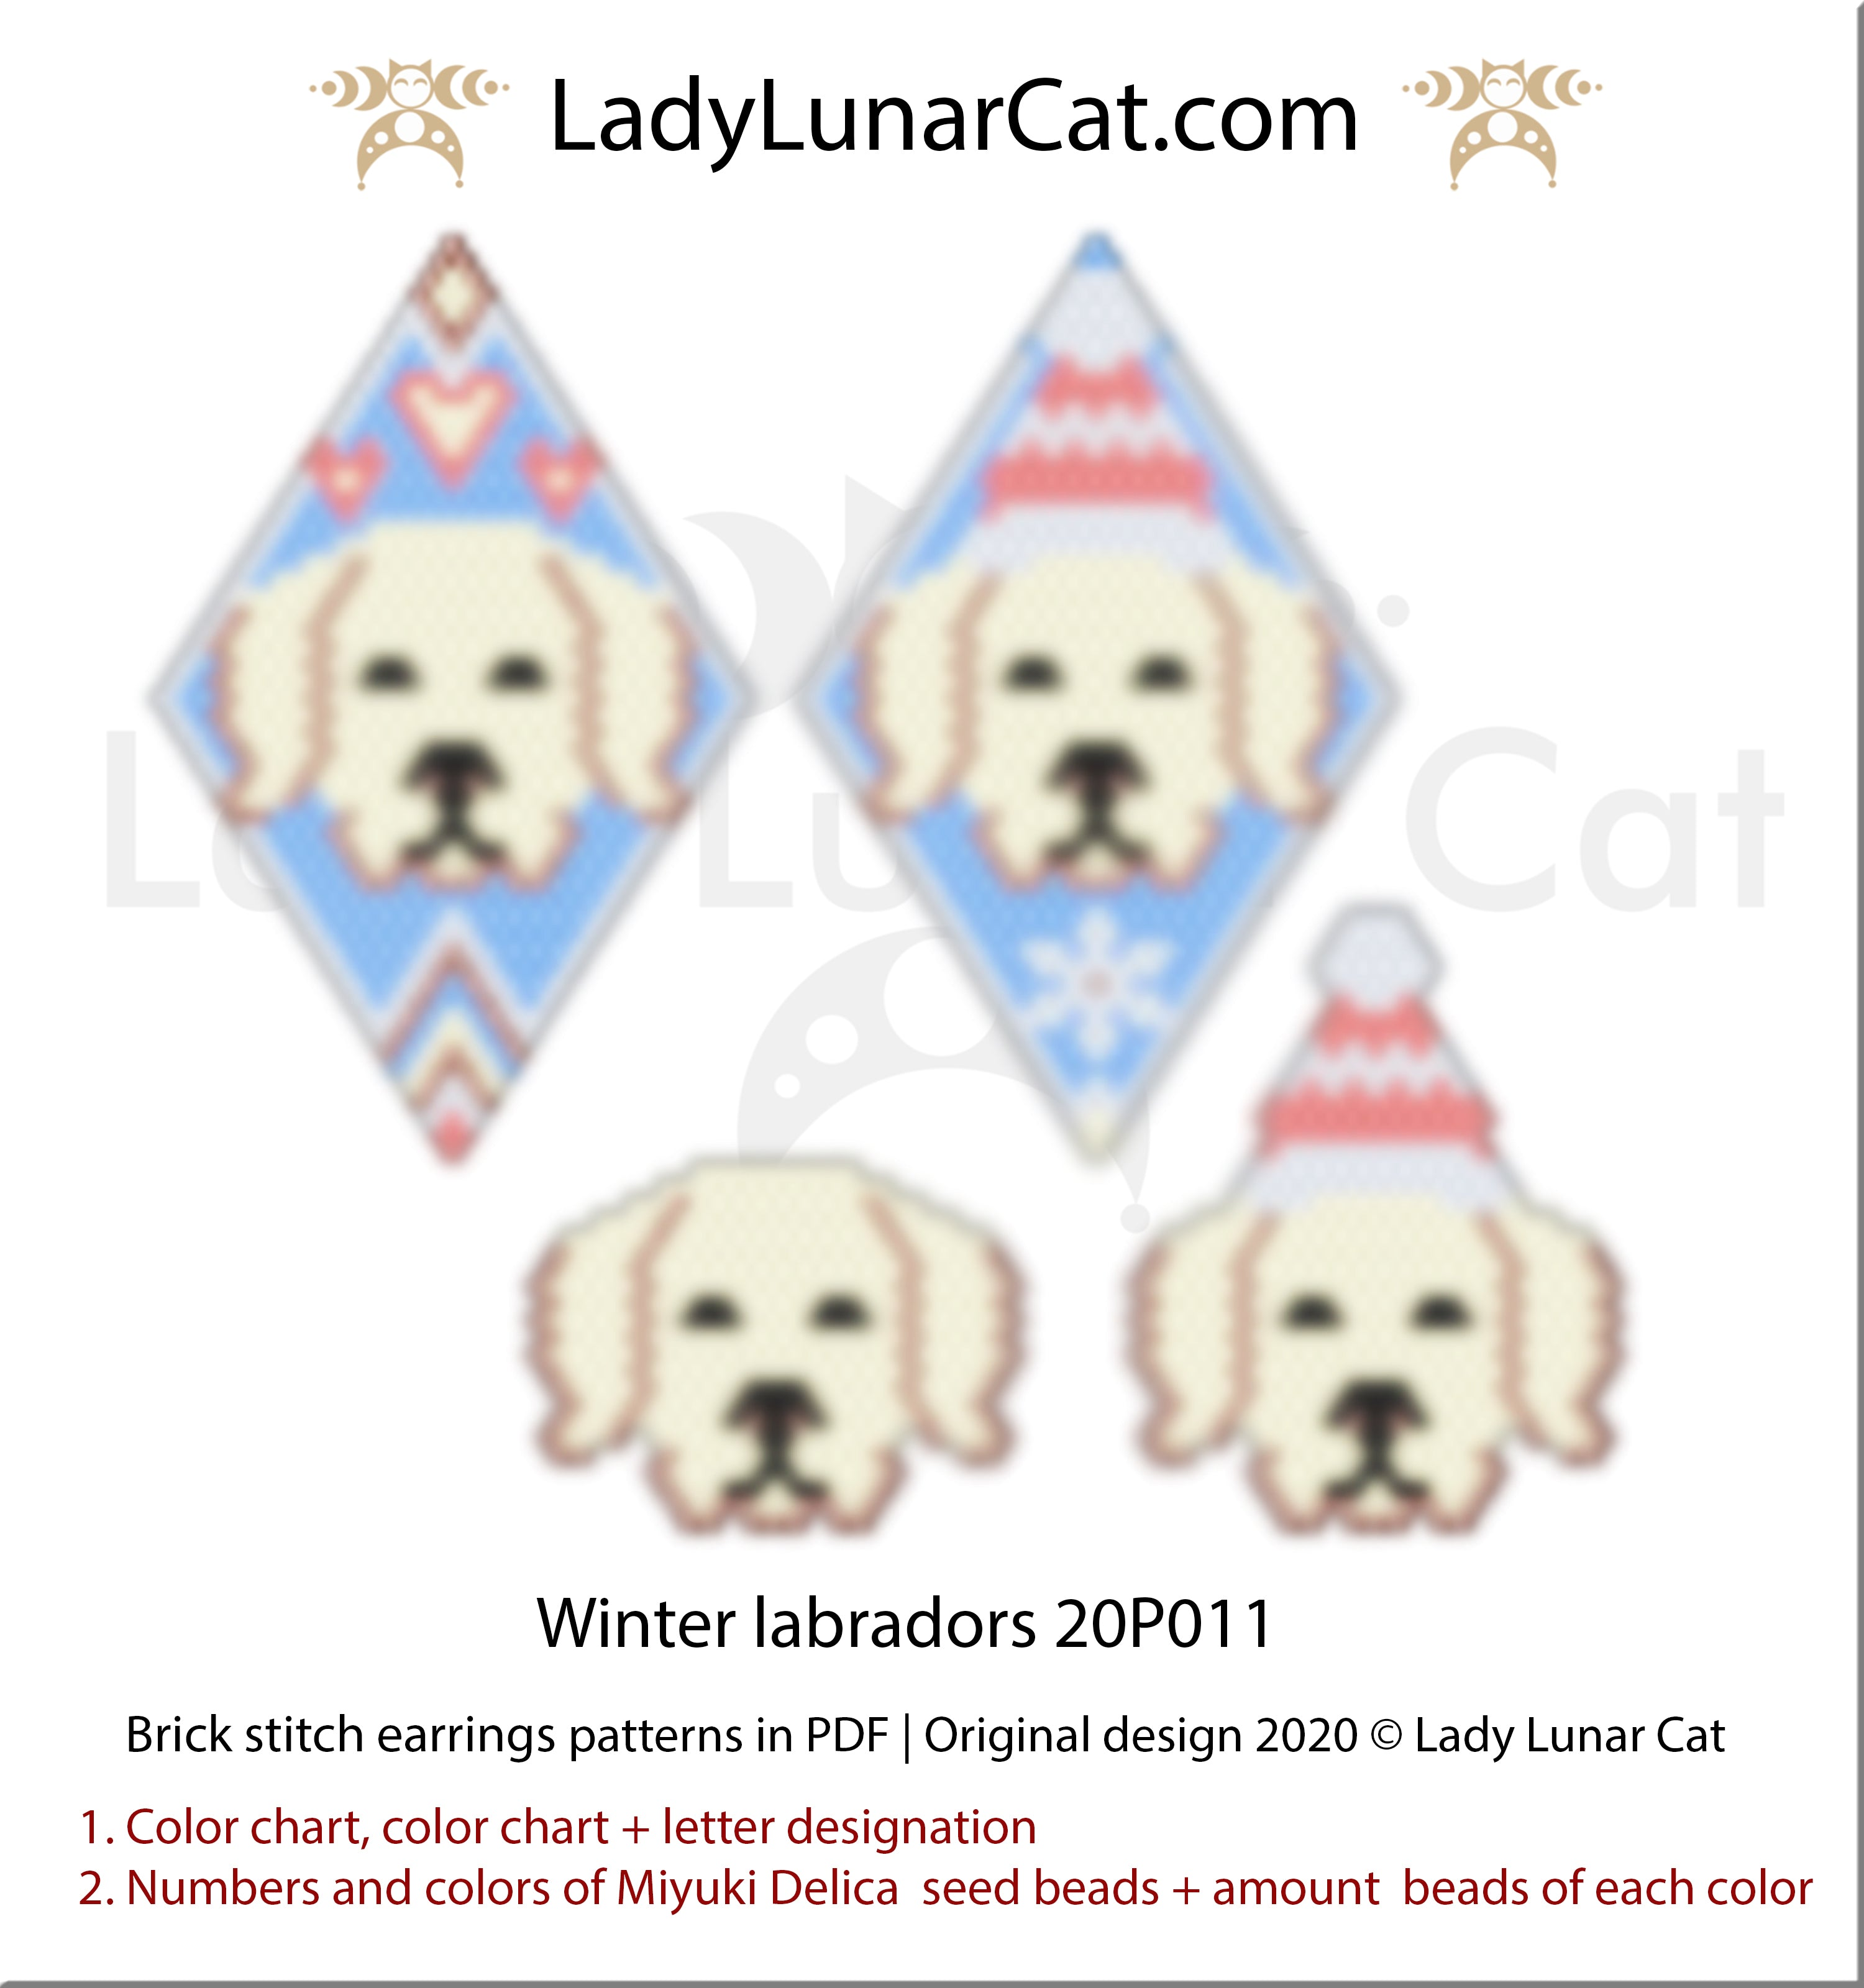 Brick stitch pattern for beading Winter Labradors 20P010 | Christmas beaded earrings tutorial by Lady Lunar Cat